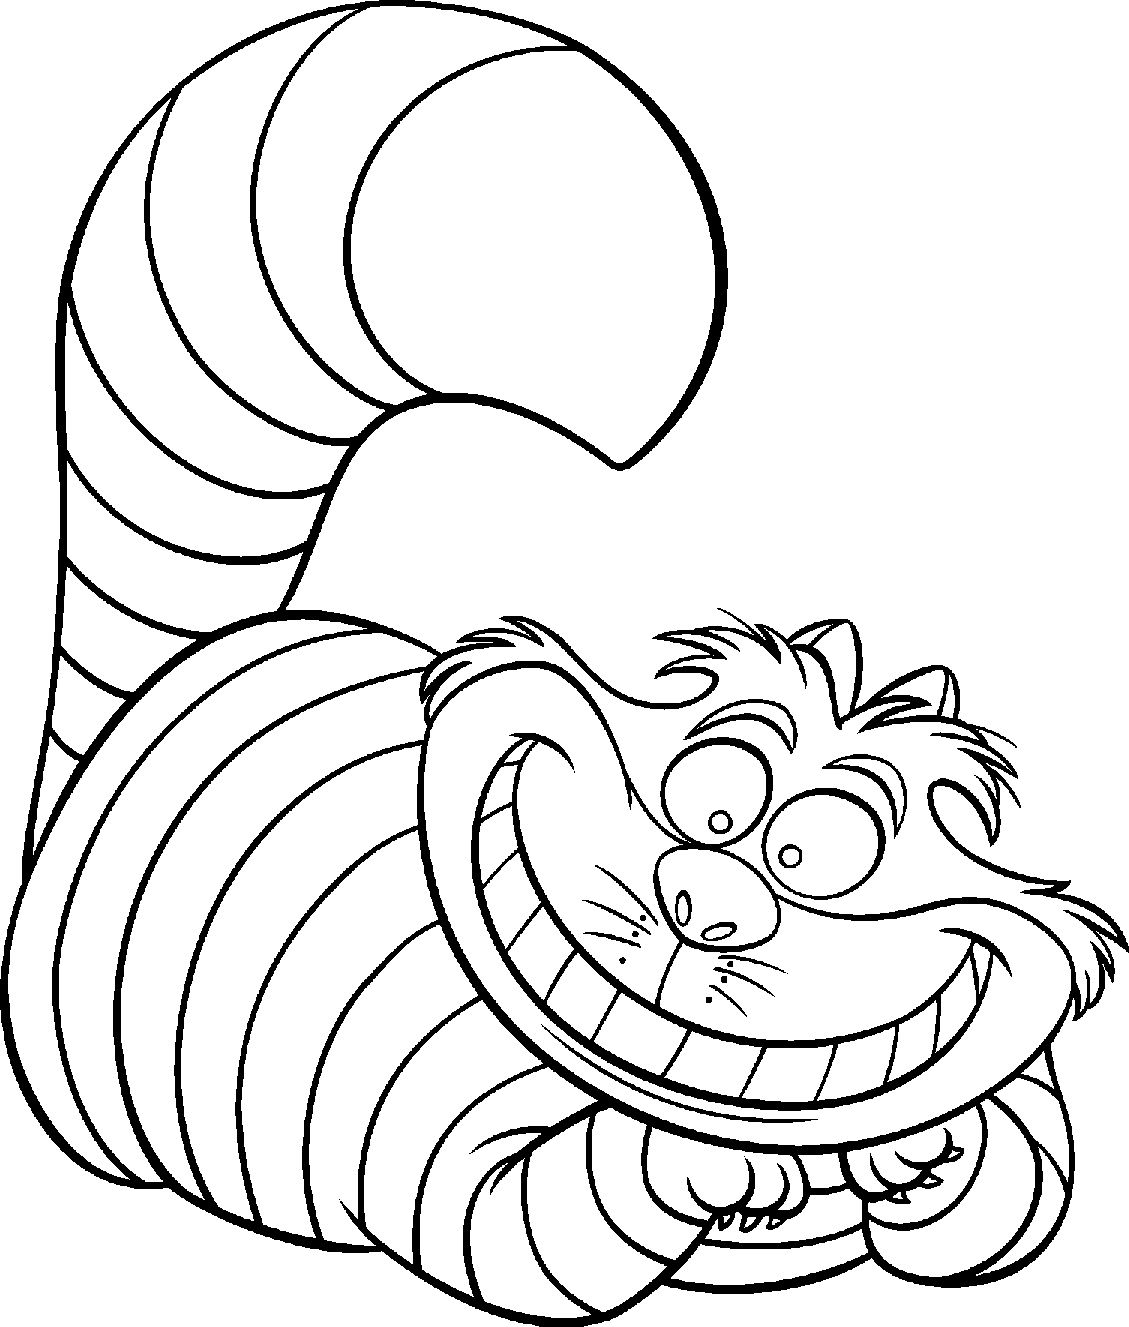 1129x1327 Disney Characters Coloring Pages Ppinews.co